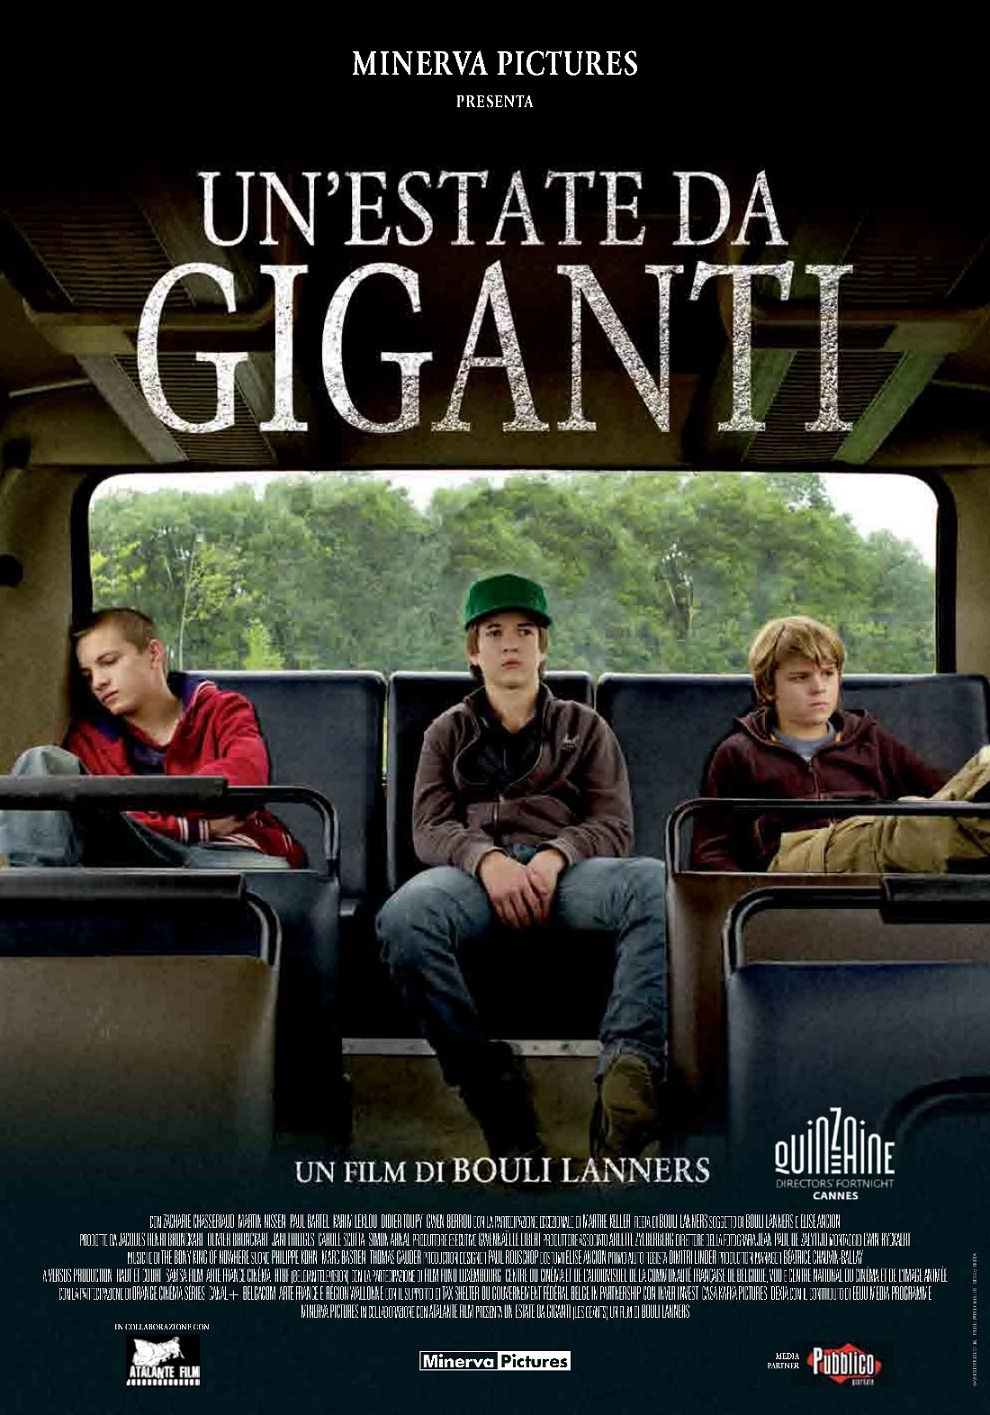 Un'estate da giganti